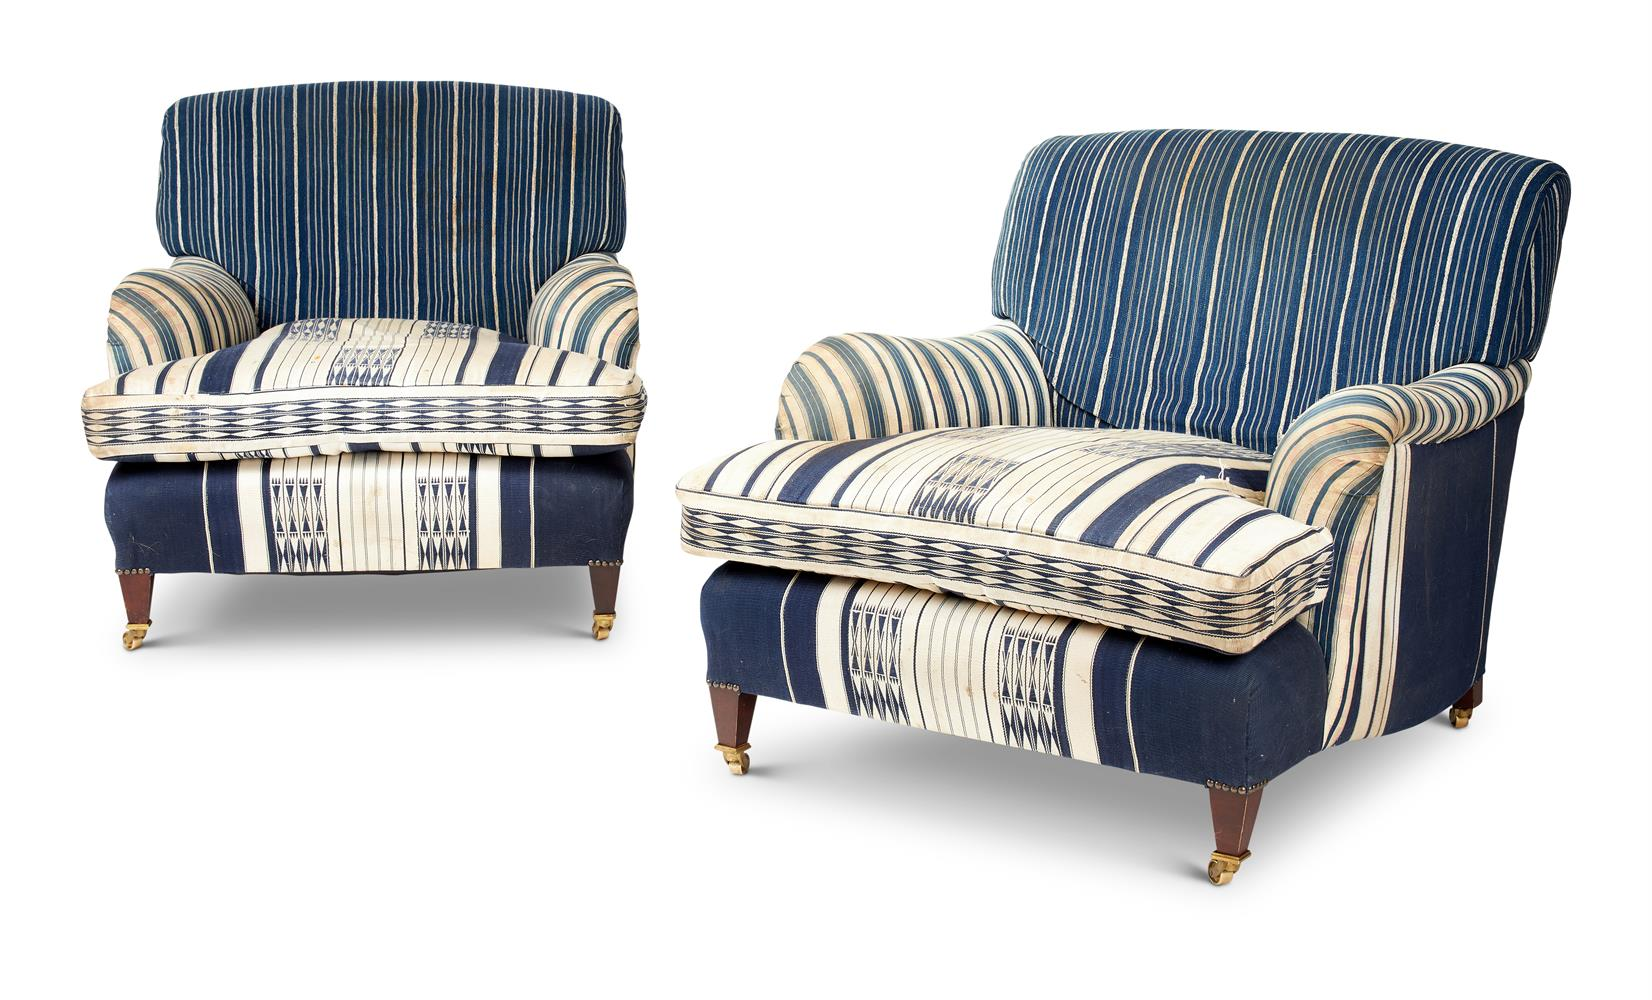 A PAIR OF HOWARD & SONS SYTLE UPHOLSTERED EASY CHAIRS